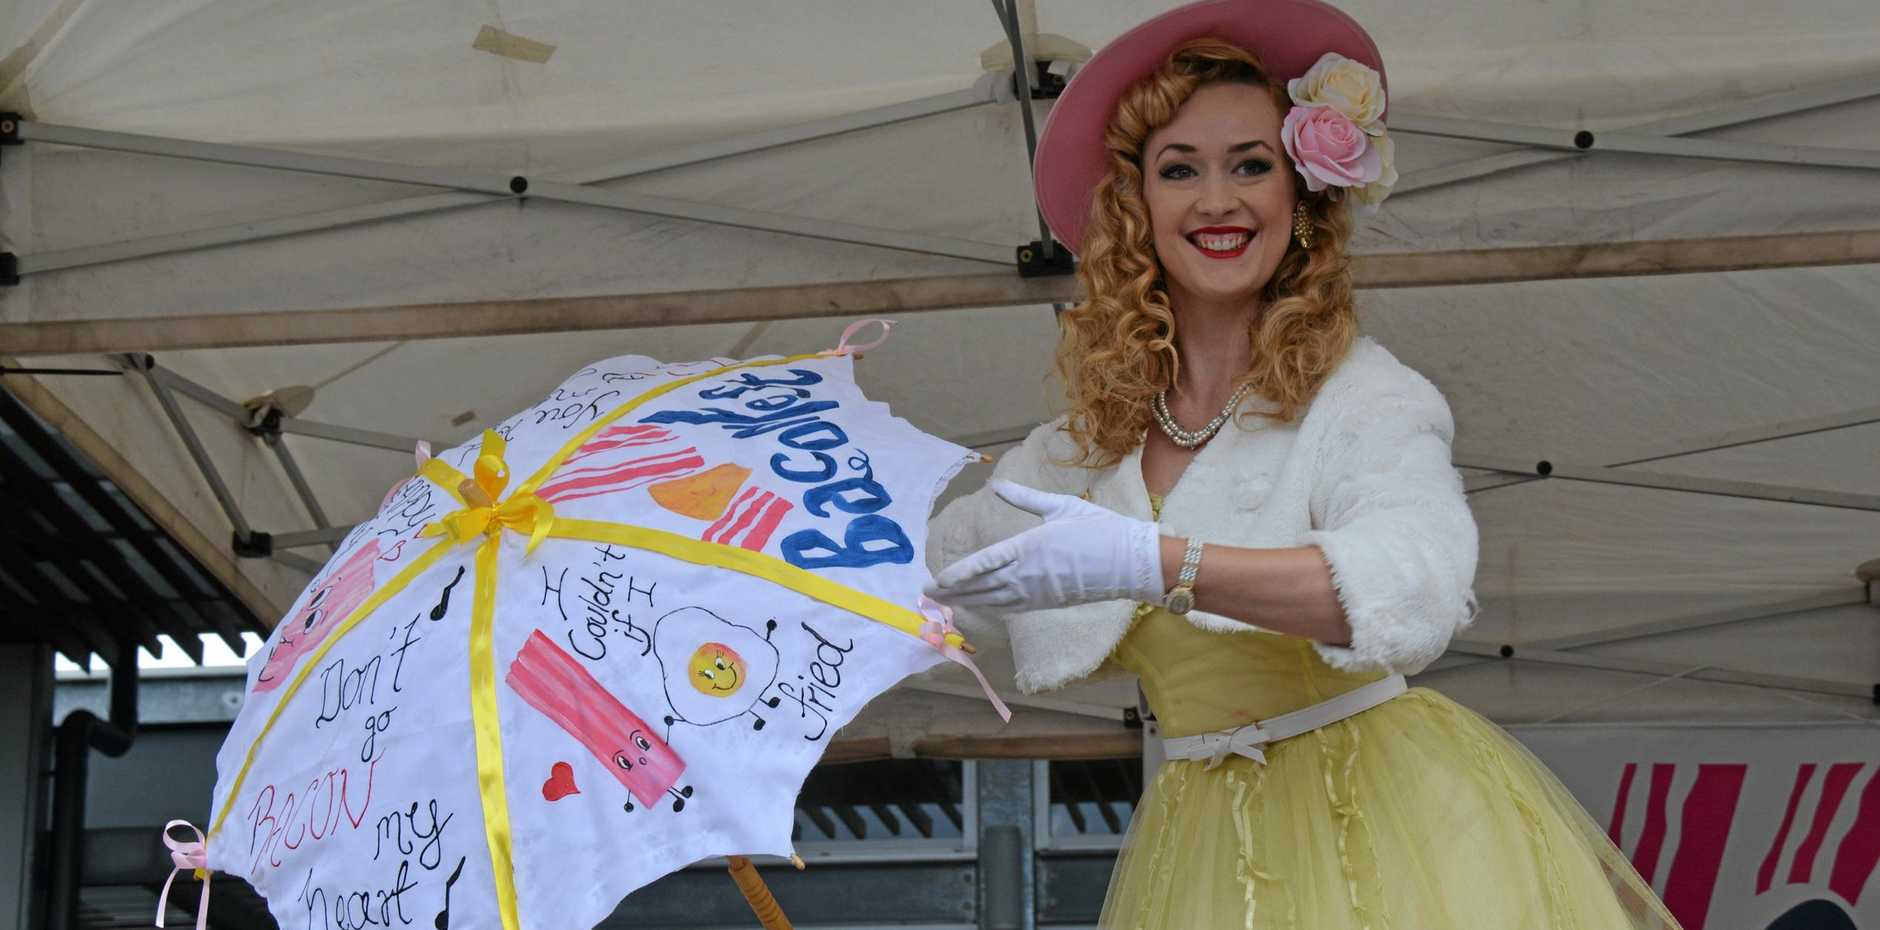 PIN-UP: Miss Kingaroy BaonFest contestant Curley Sue prepares for the rain during the BaconFest weekend in Kingaroy.